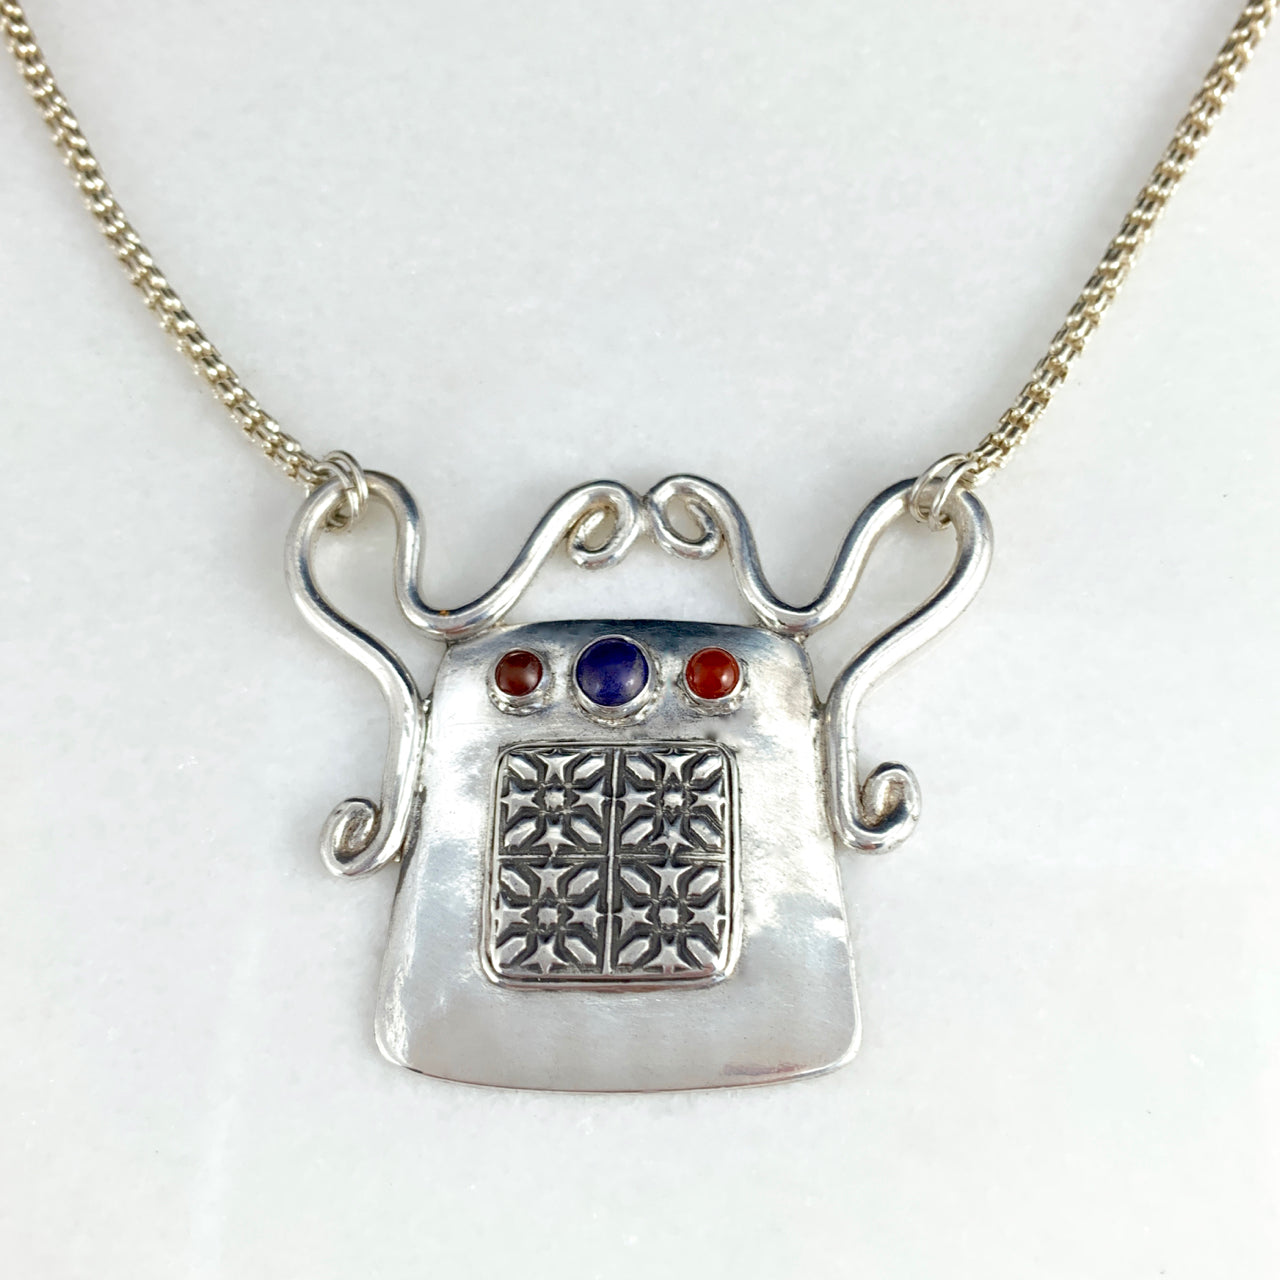 Tribal Spirit Lock Pendant with Lapis & Carnelian Necklace